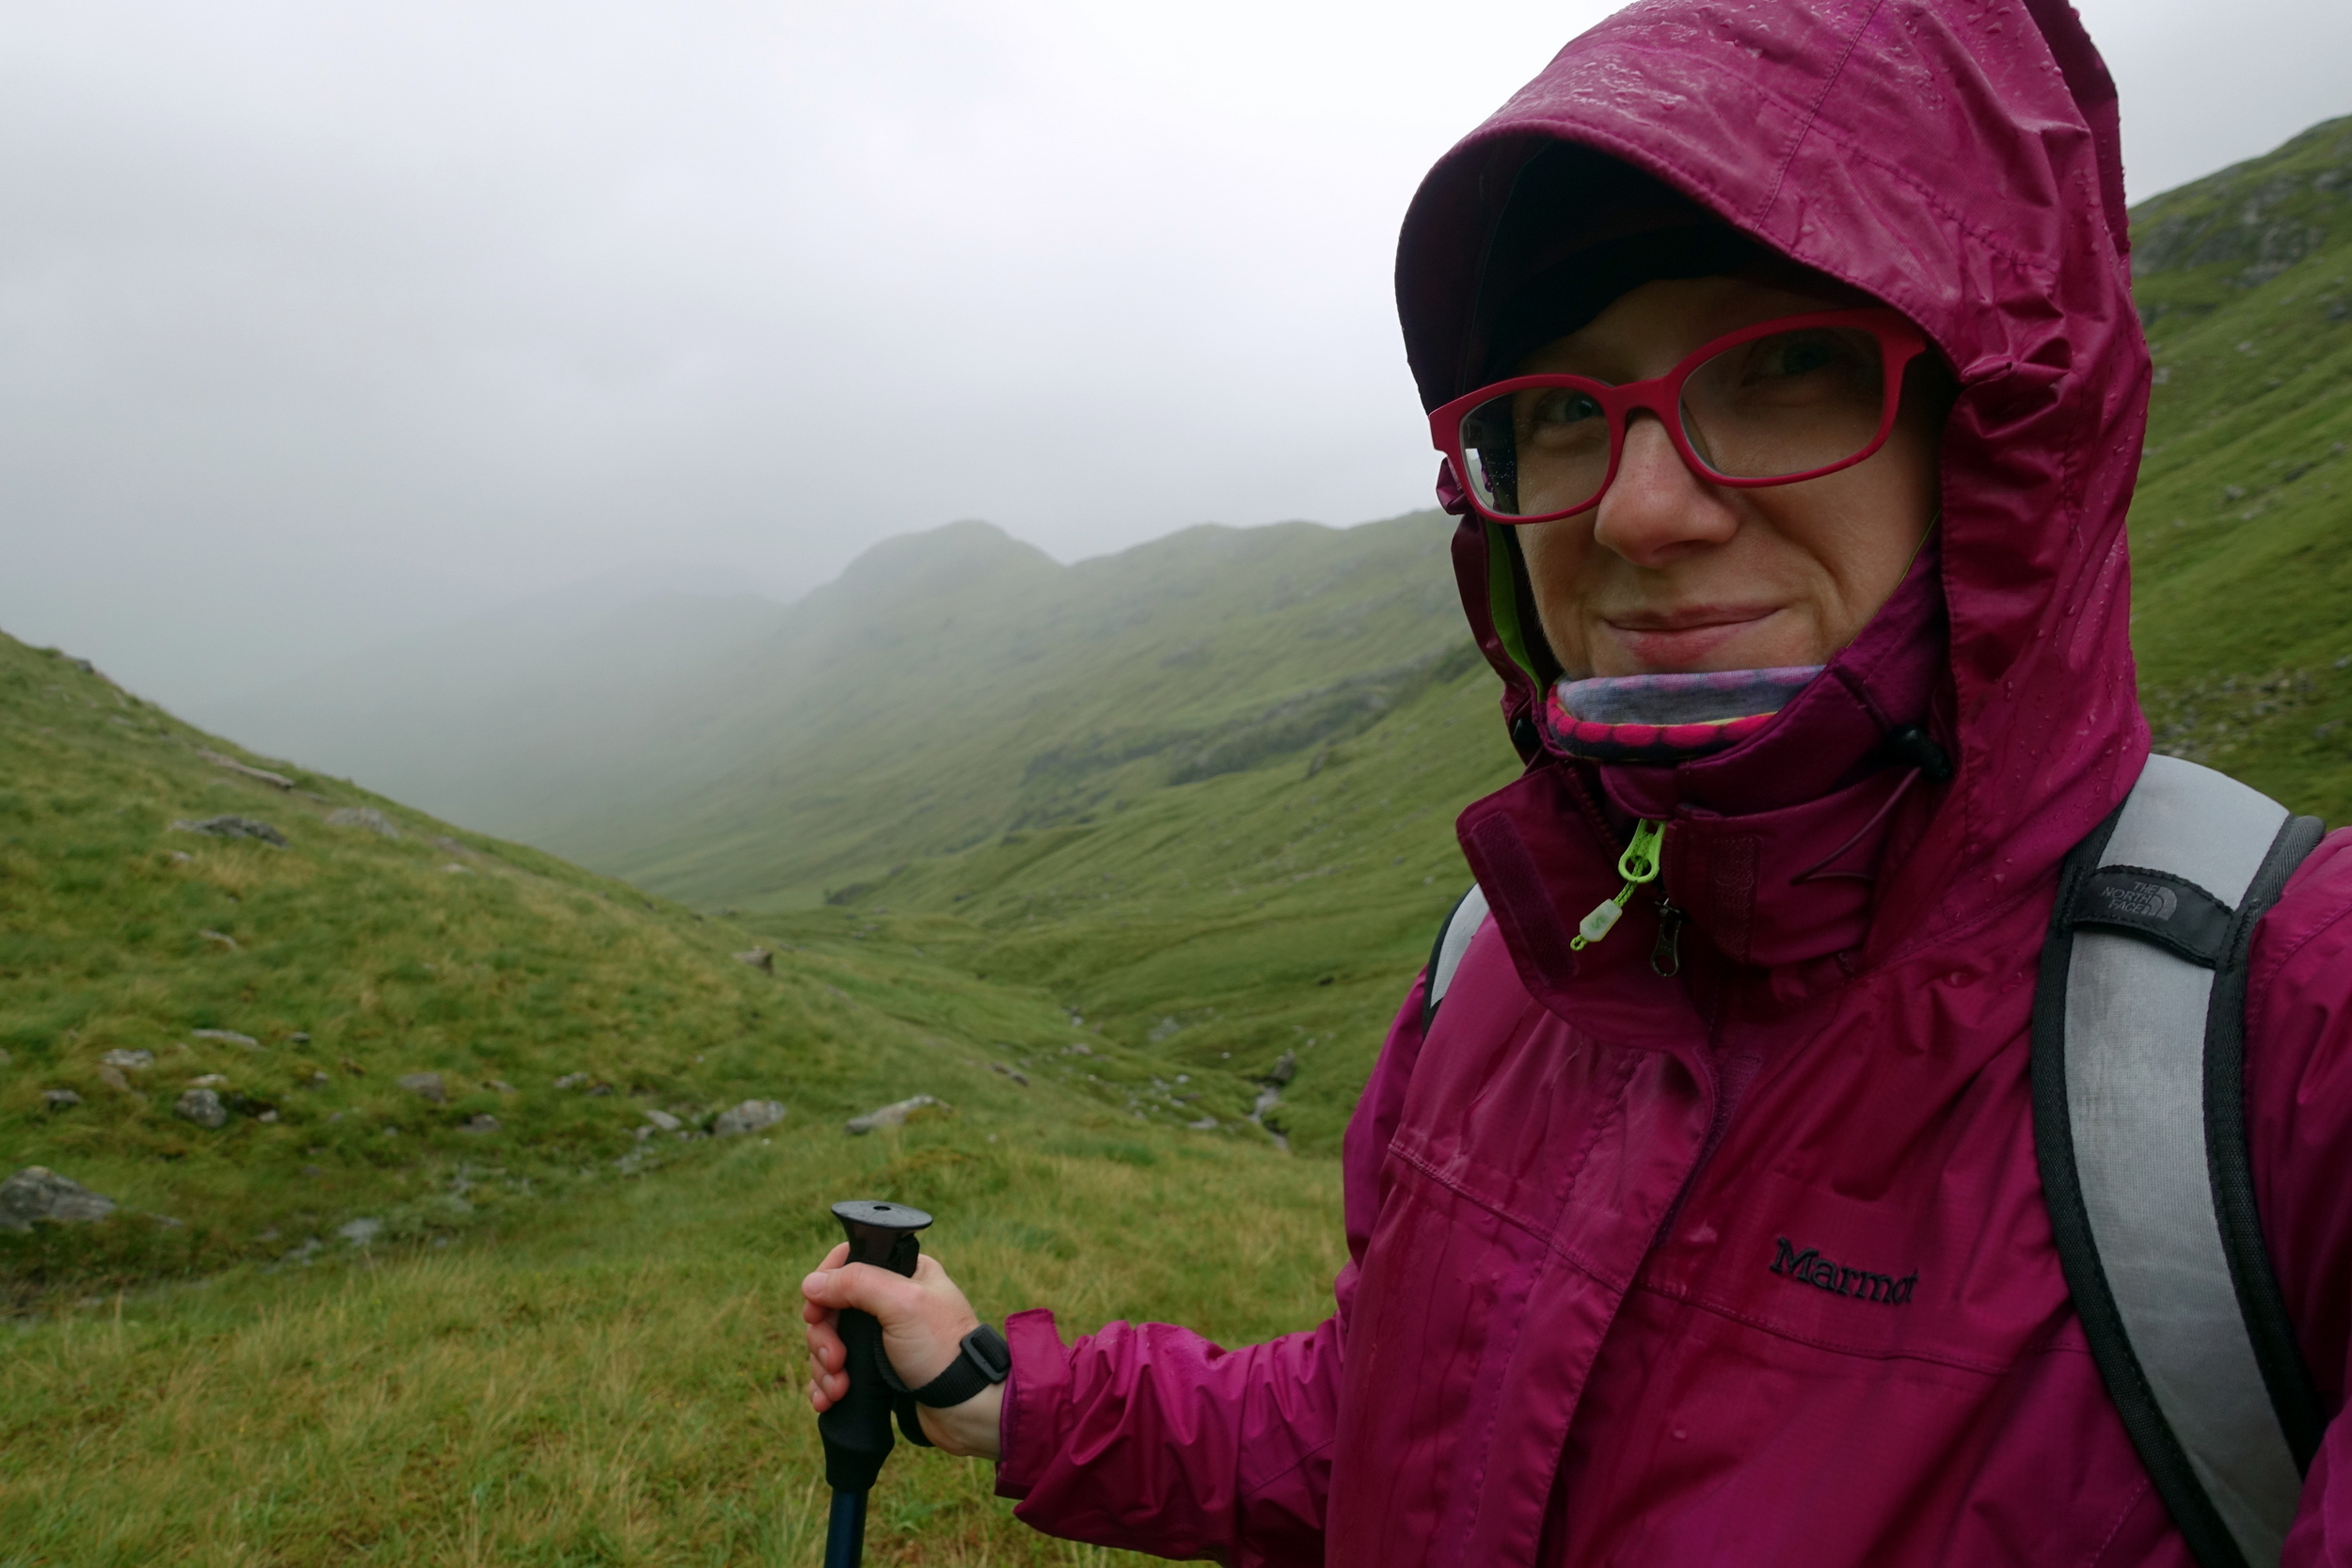 Marmot PreCip Rain jacket  braving the Scottish weather at the start of the Cape Wrath Trail